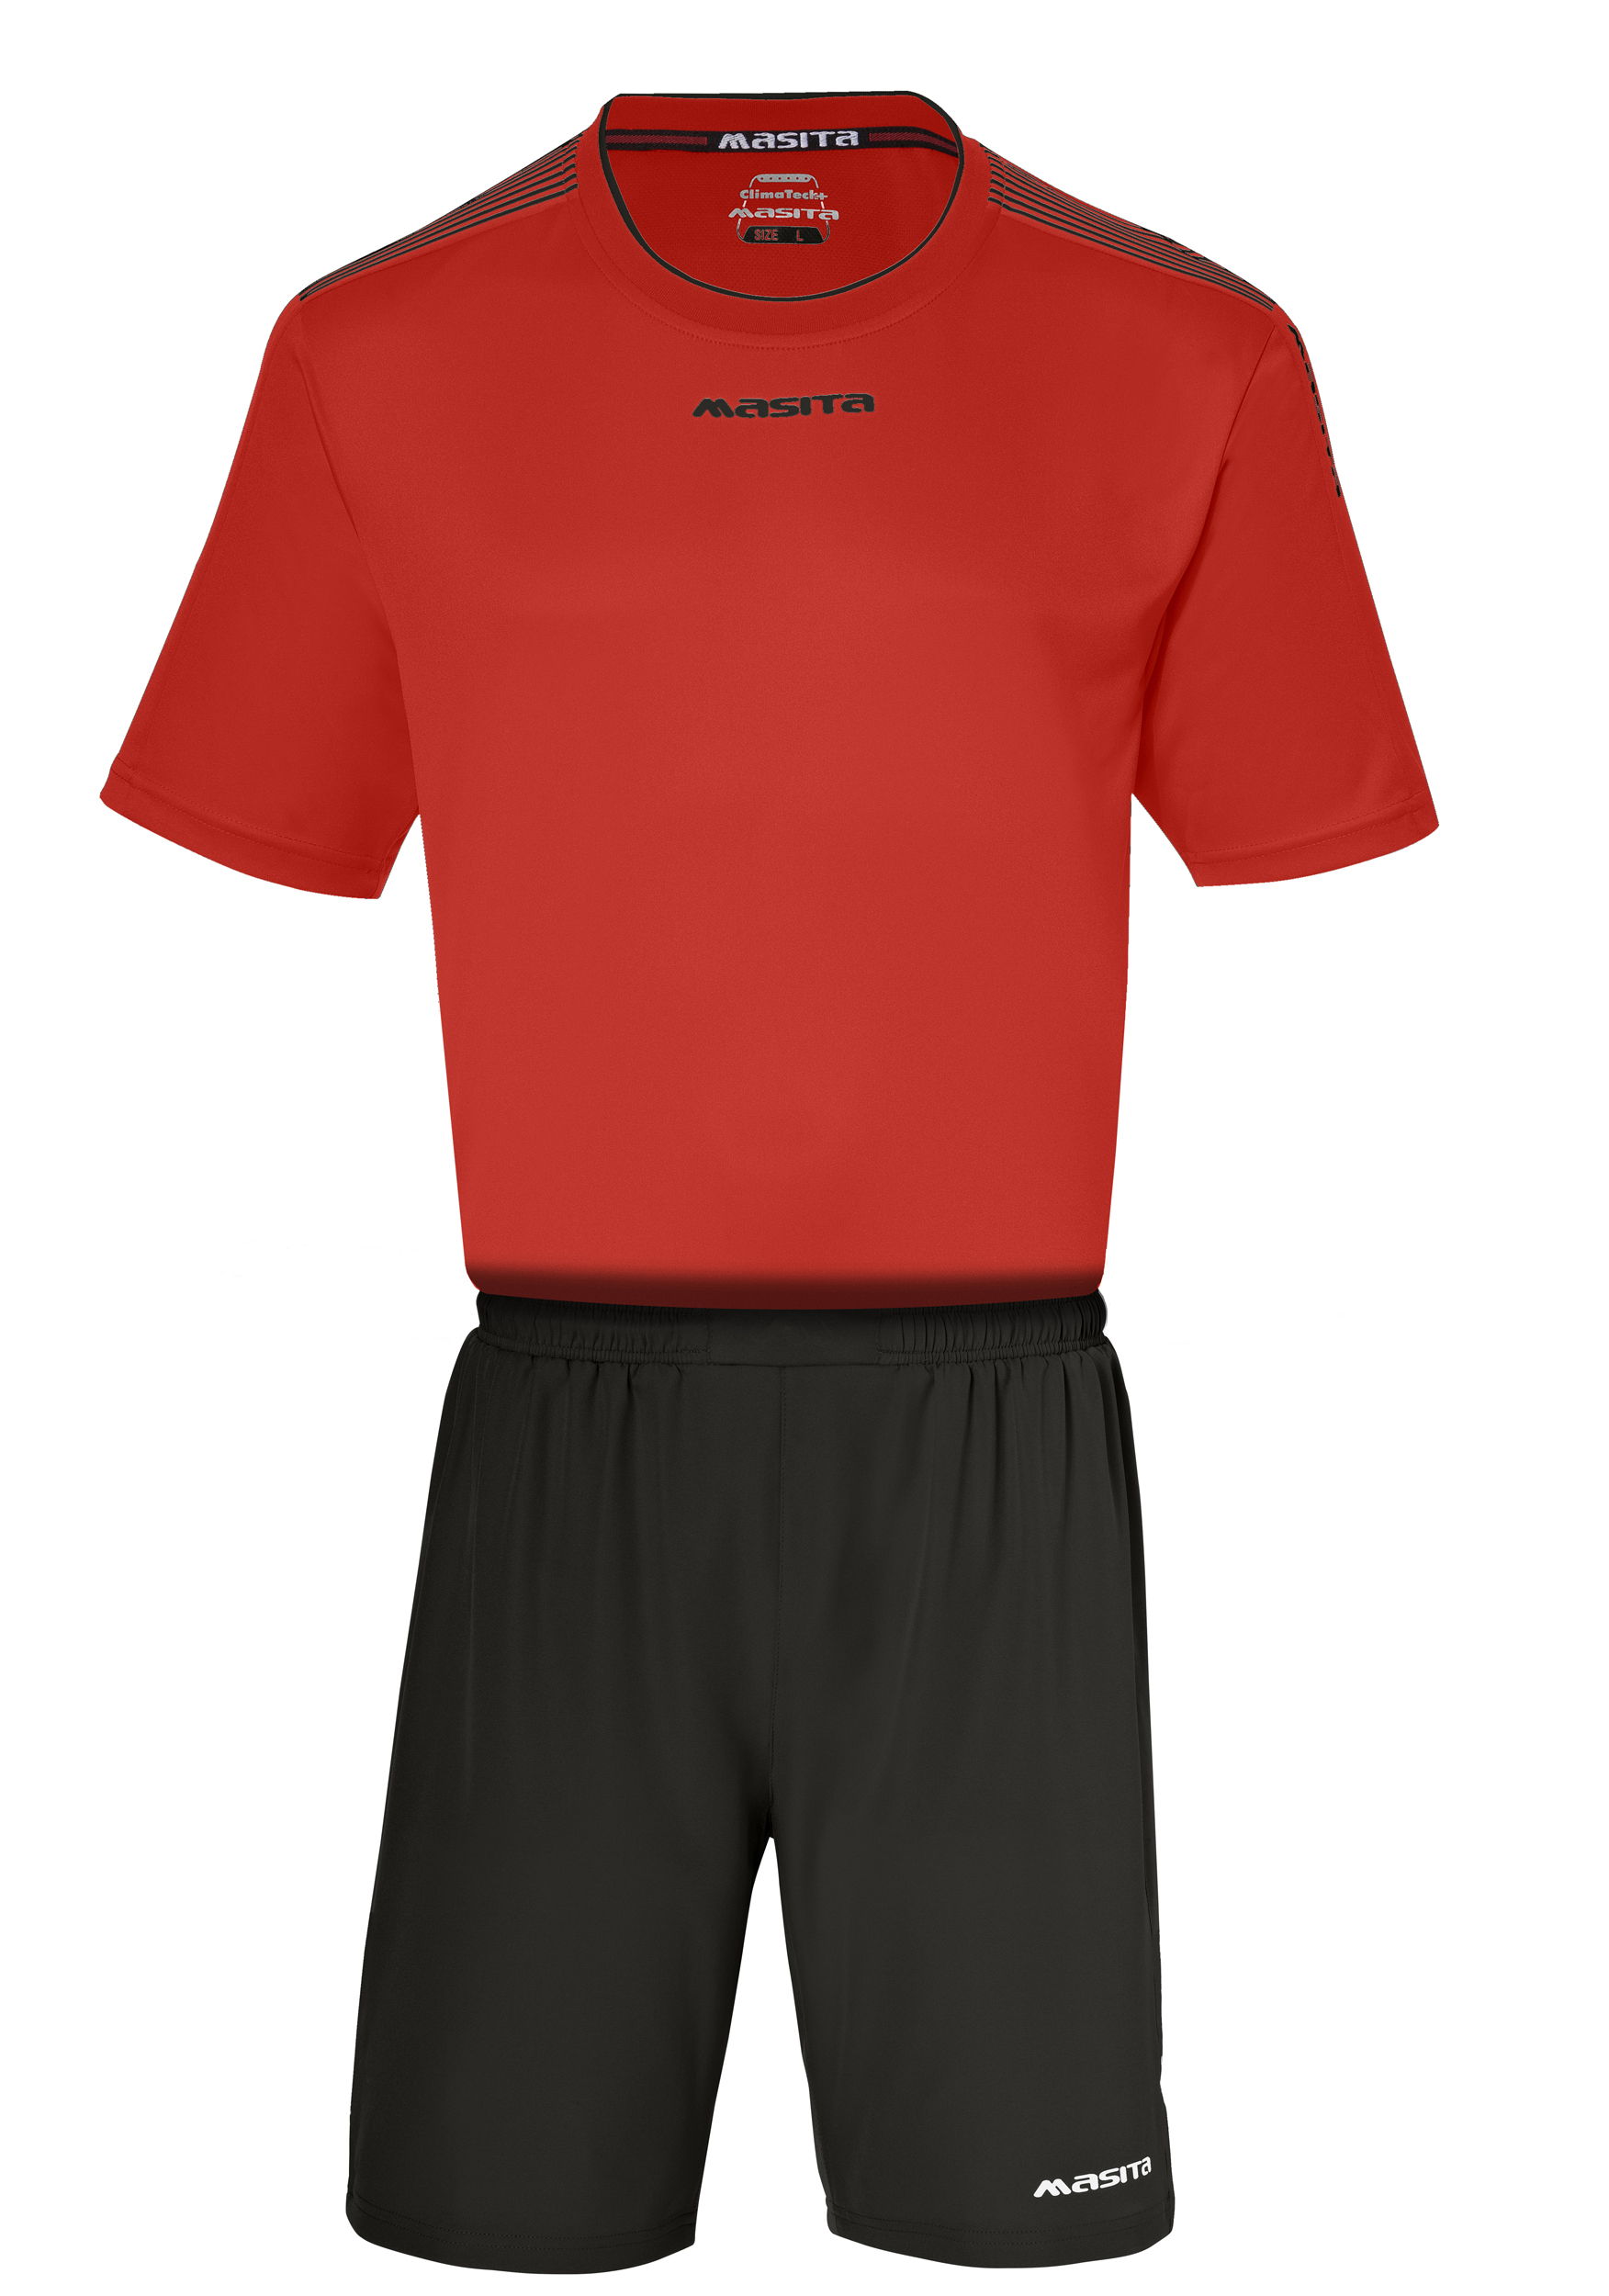 SportShirt Sevilla  Red / Black